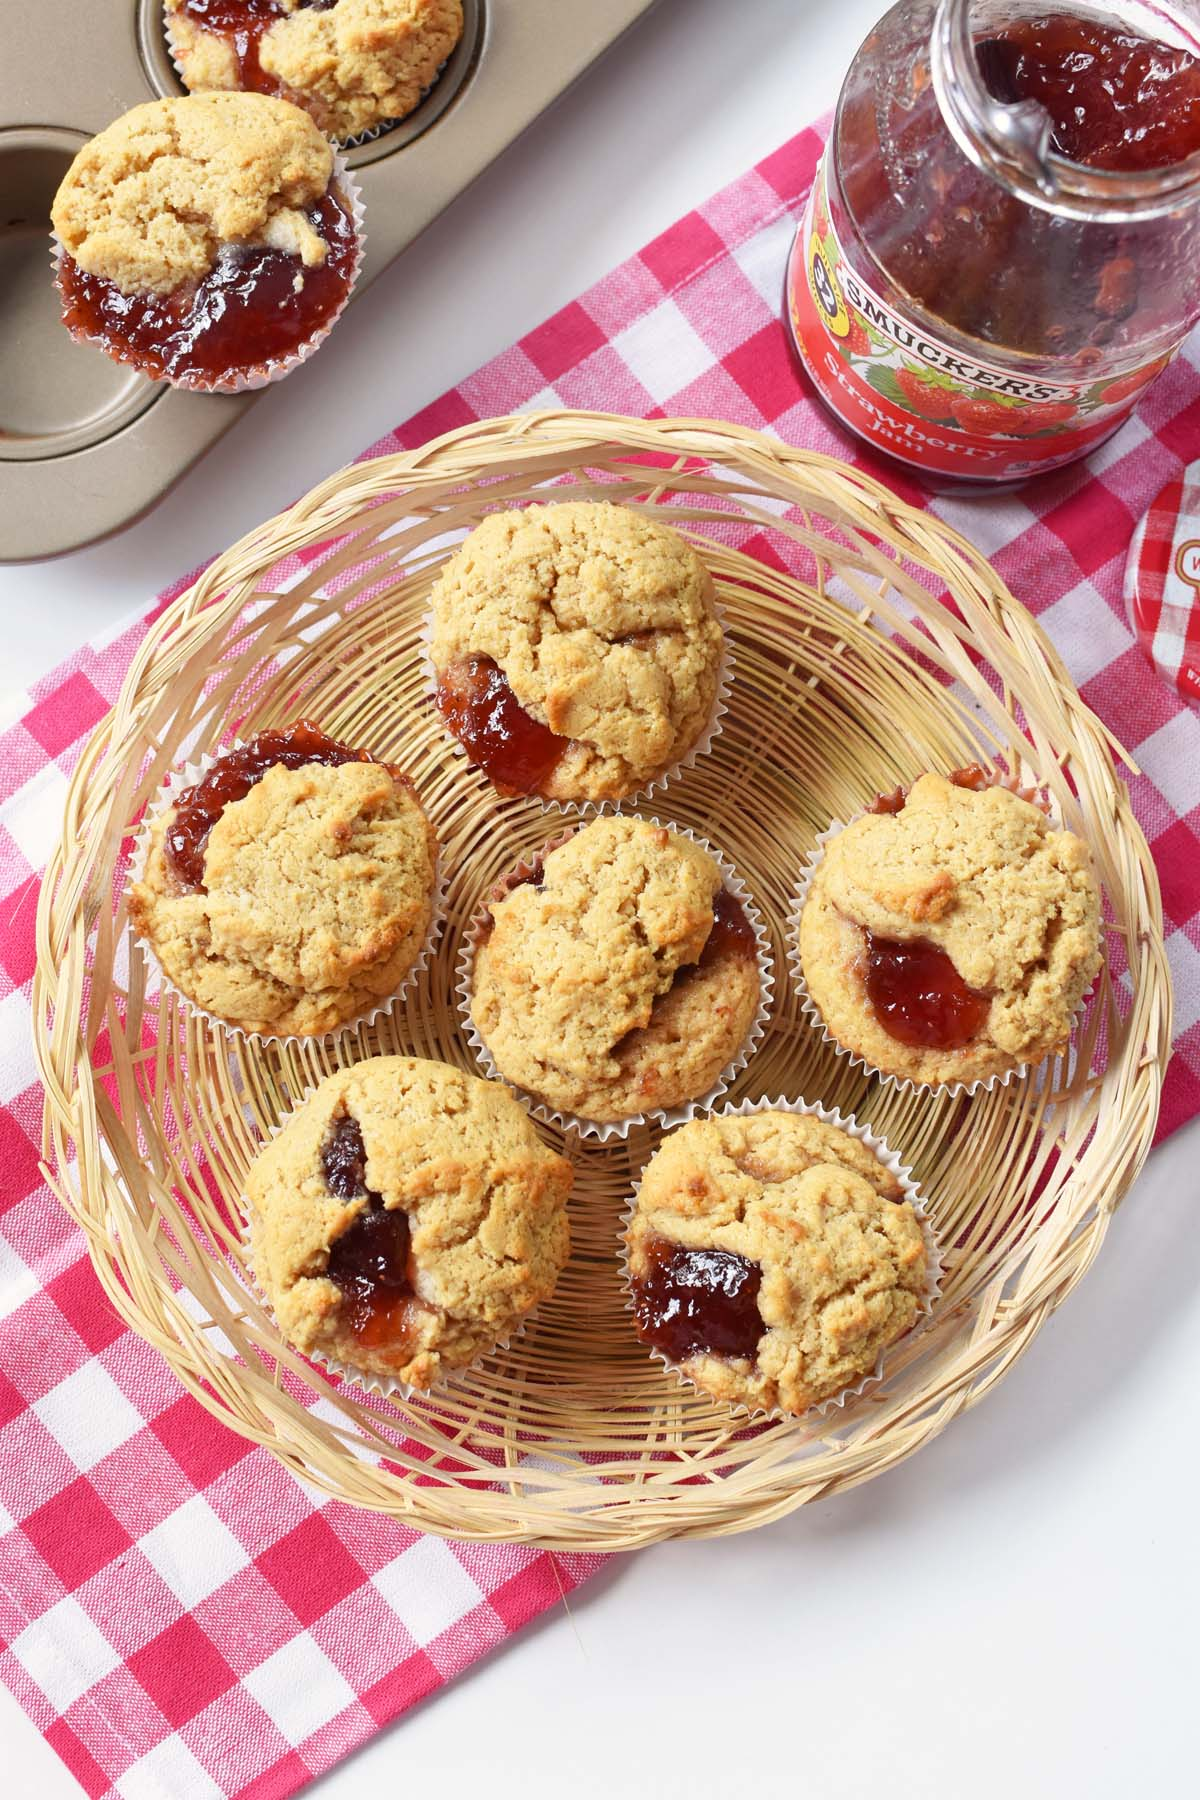 Peanut Butter & Jelly Muffins are in a wicker basket with a red plaid napkin, muffin tin, and Smucker's Strawberry Jam jar.